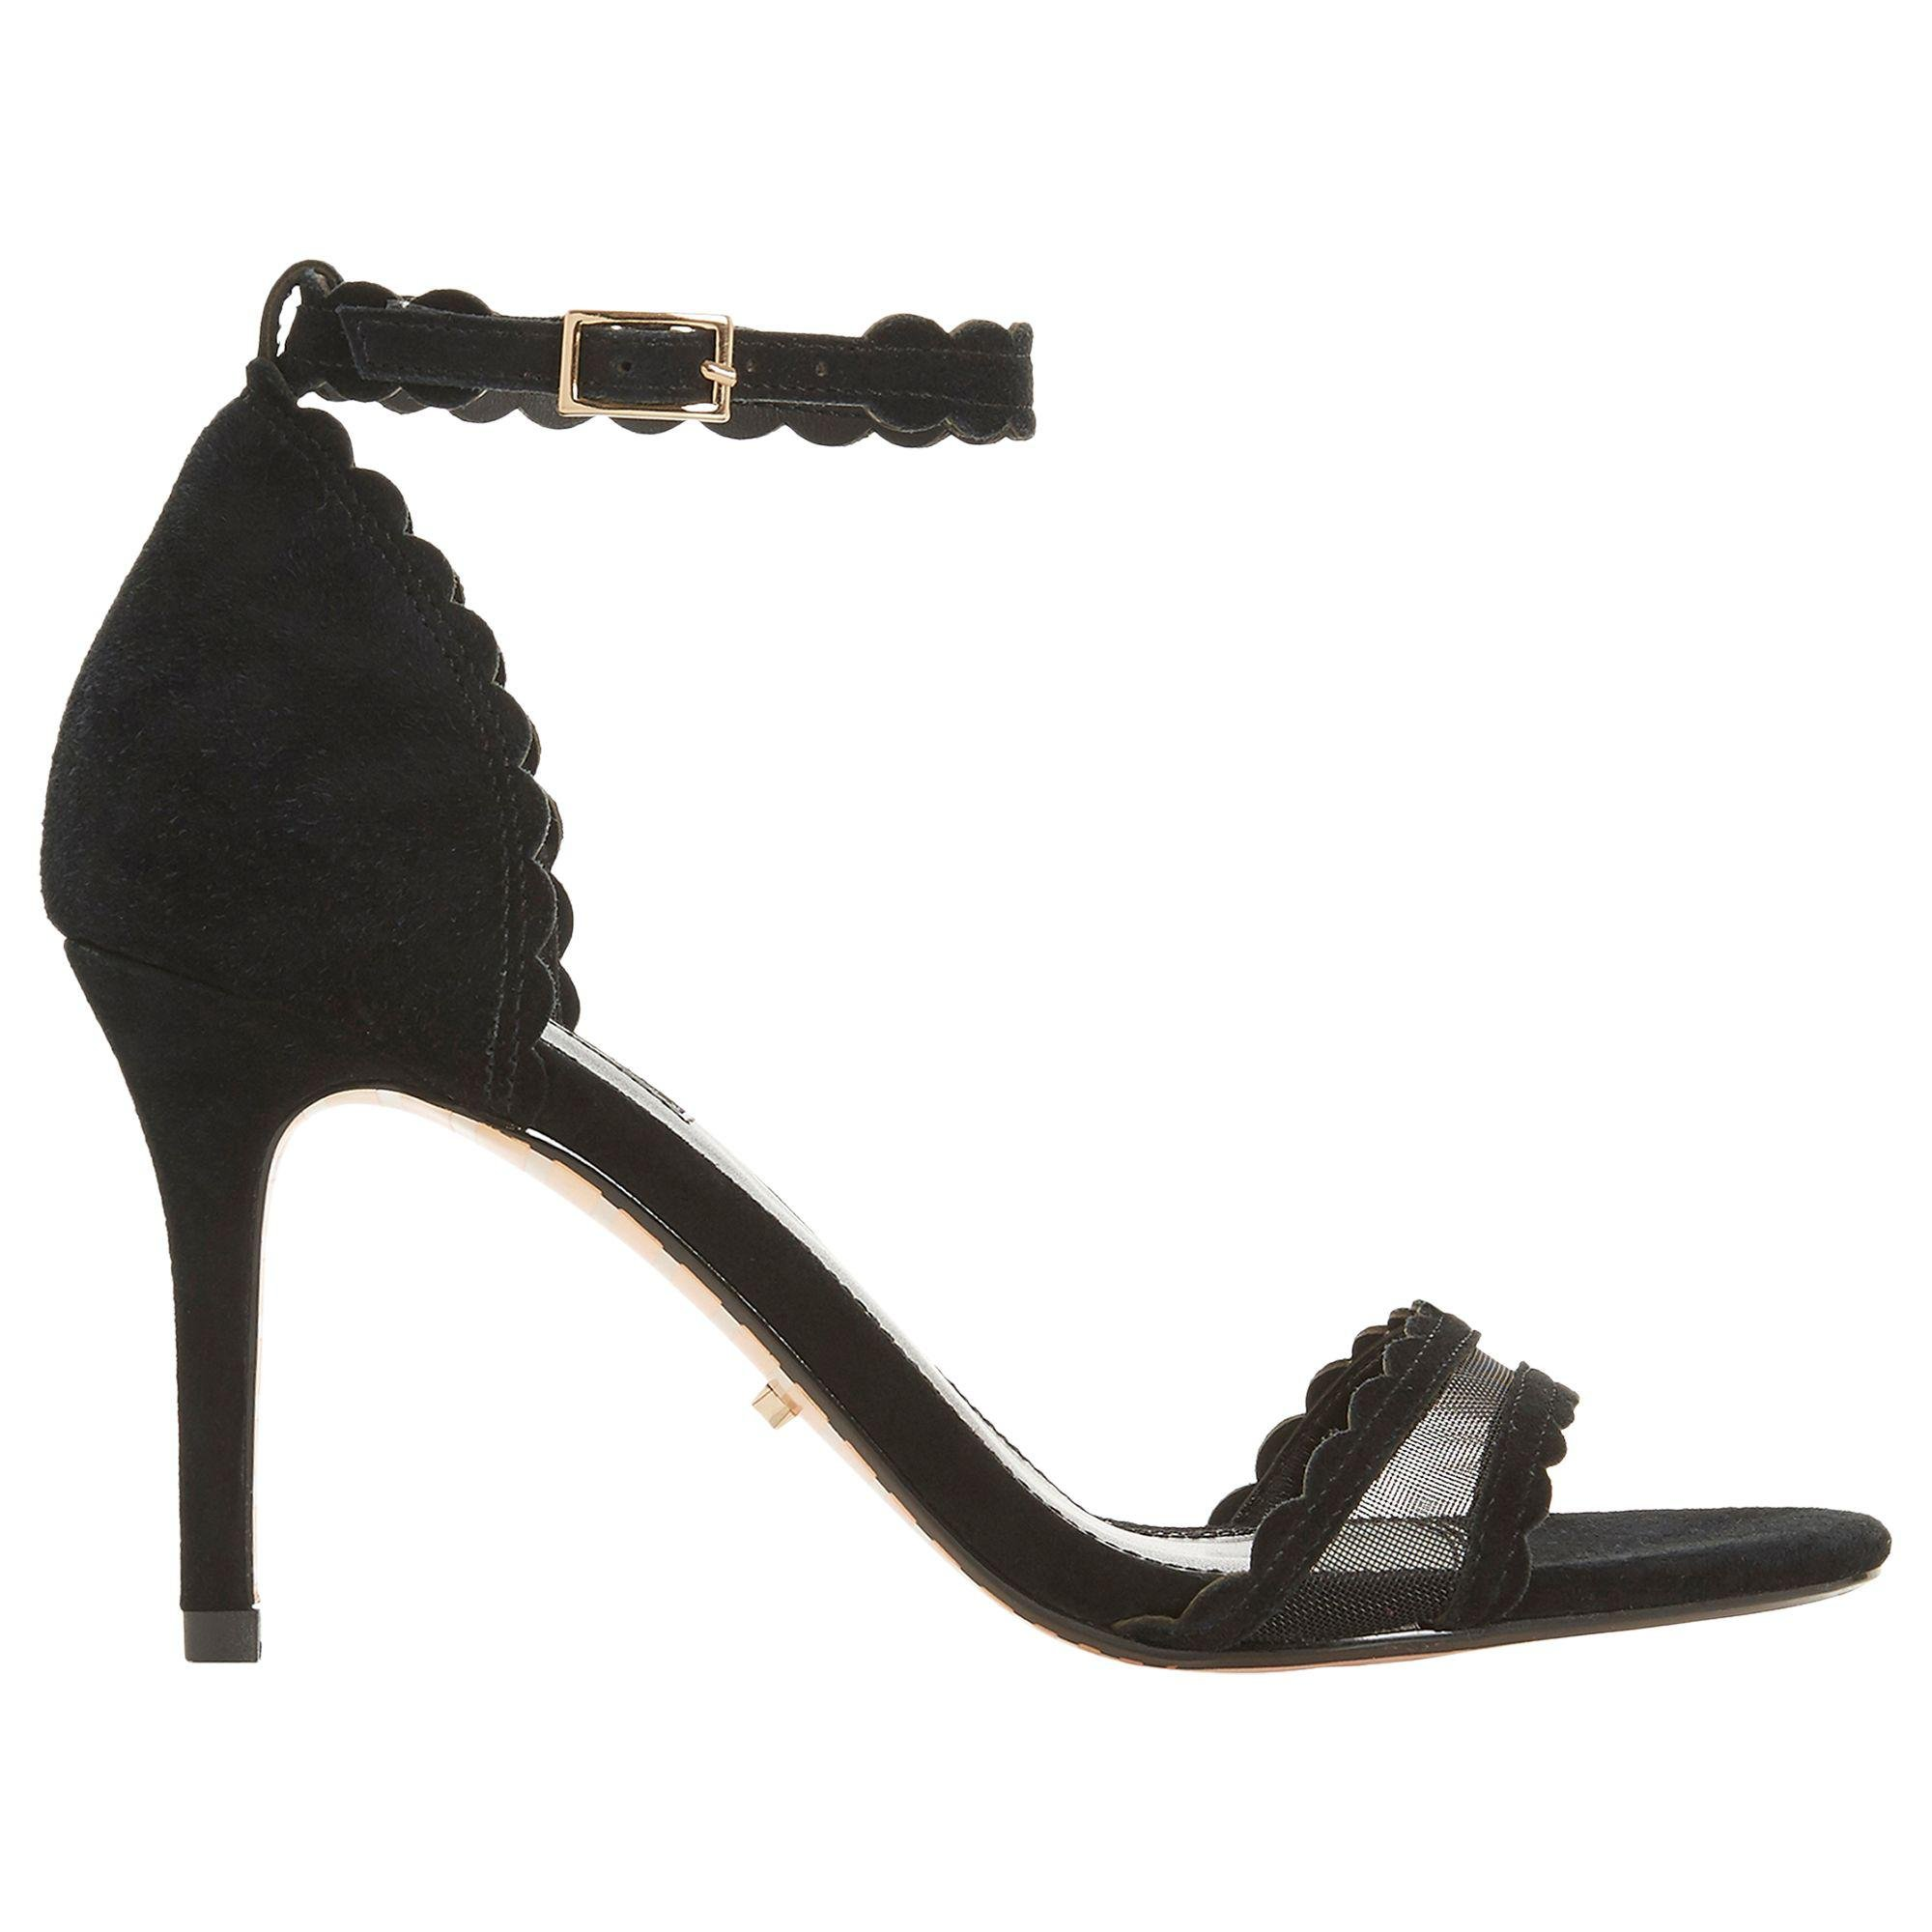 1d272dc71daf Dune Maam Open Toe Sandals in Black - Lyst